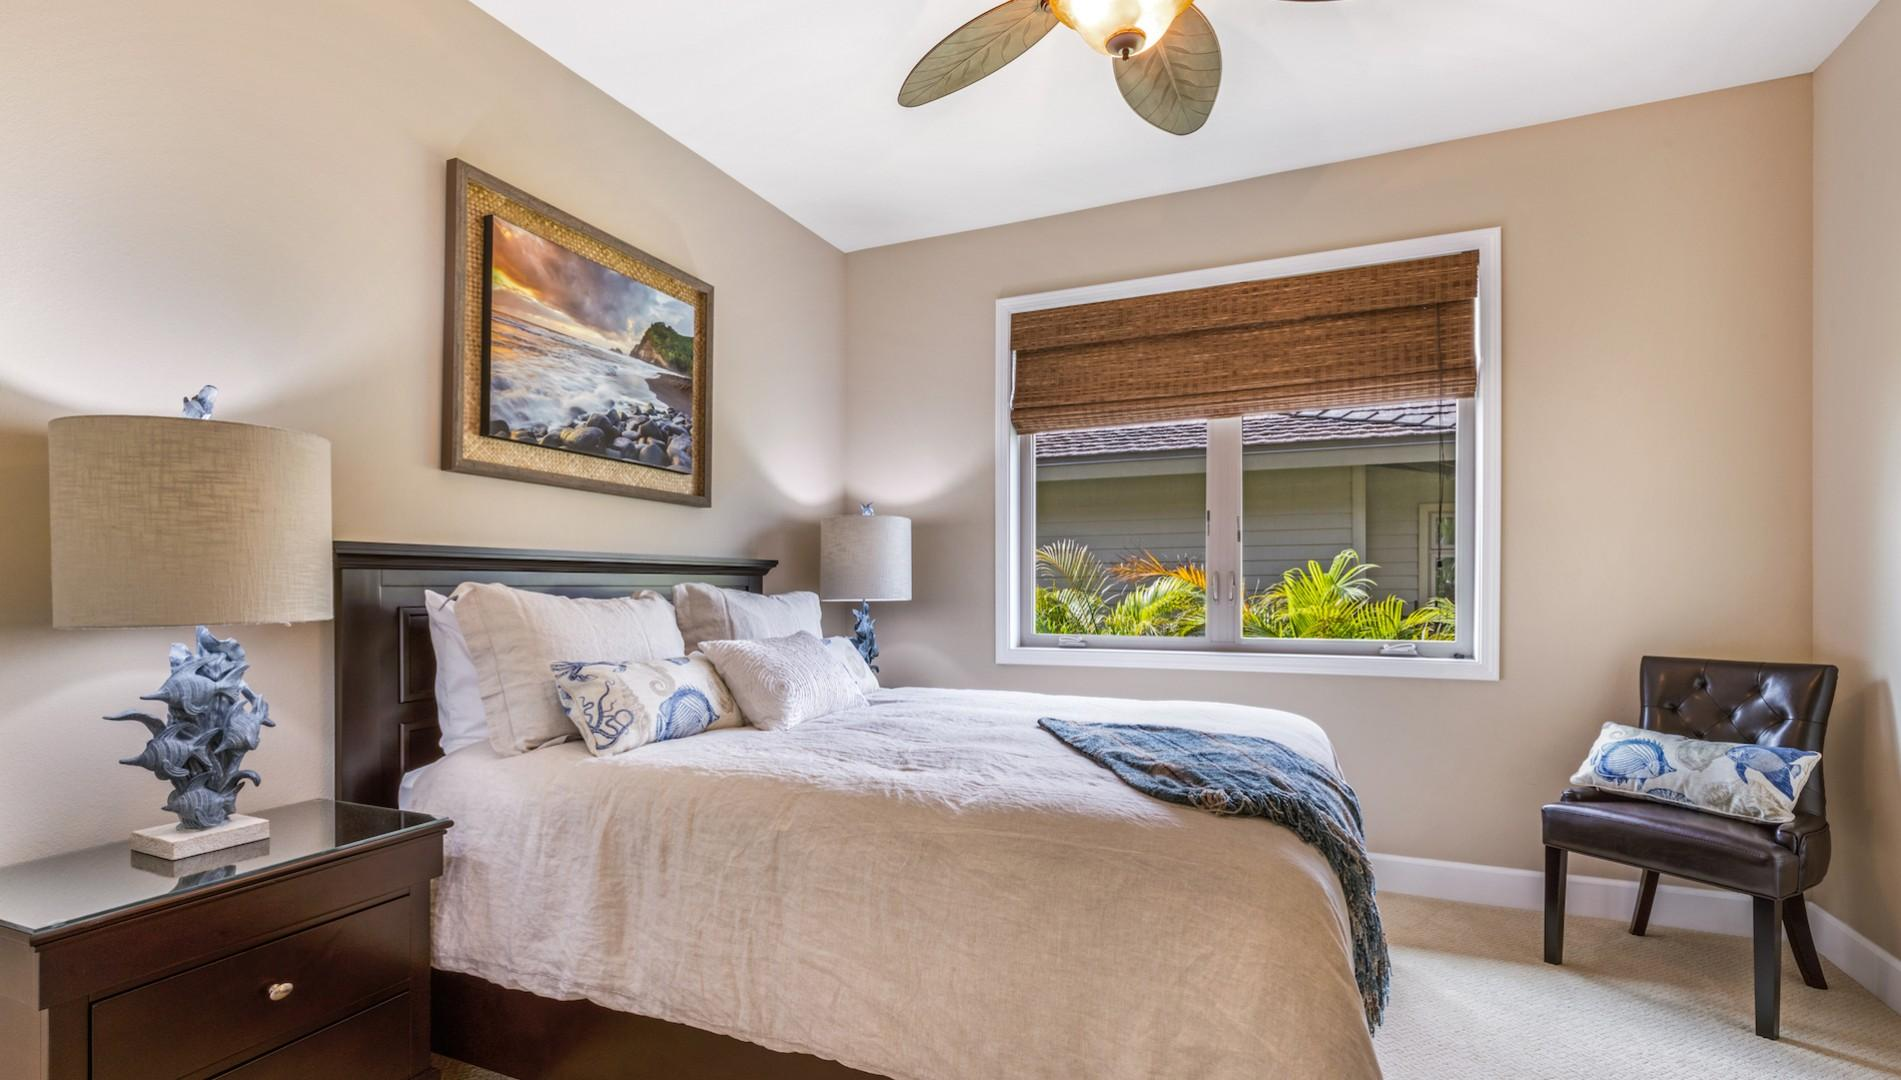 Third bedroom, with queen bed and en suite full bath with tub/shower combo.